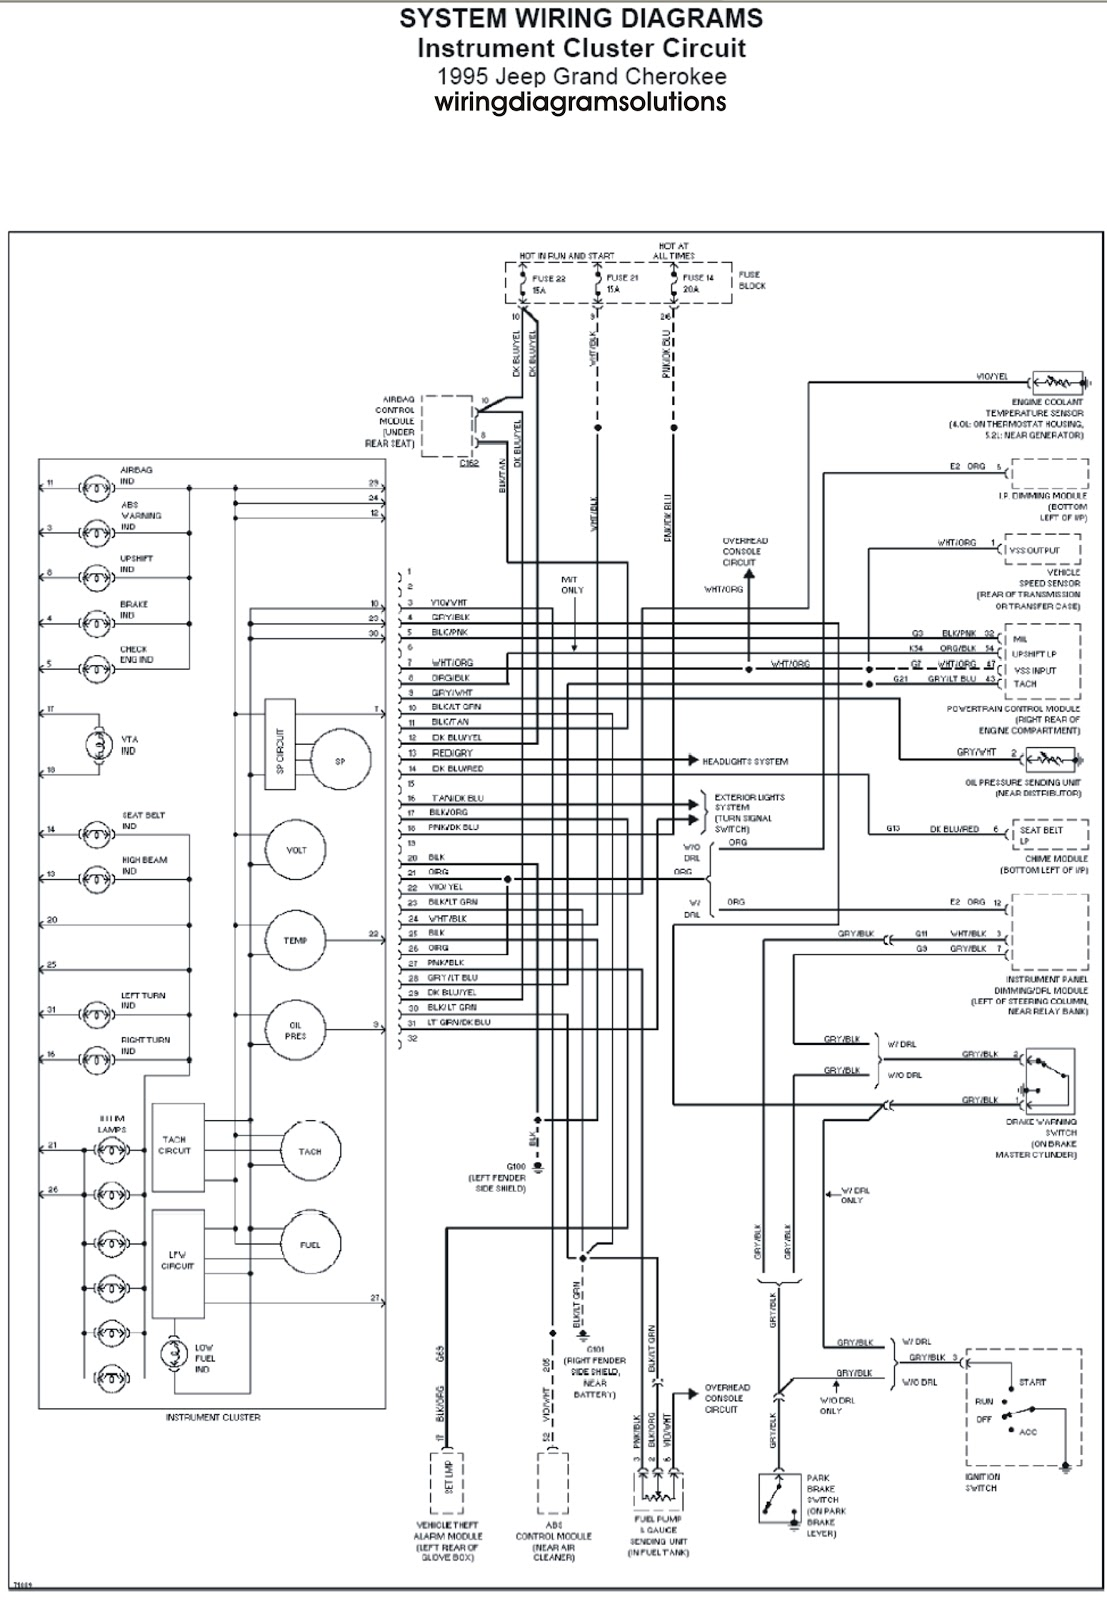 2000 gtp wiring diagram free download schematic simple wiring schema 2000 gtp wiring diagram free download [ 1107 x 1600 Pixel ]